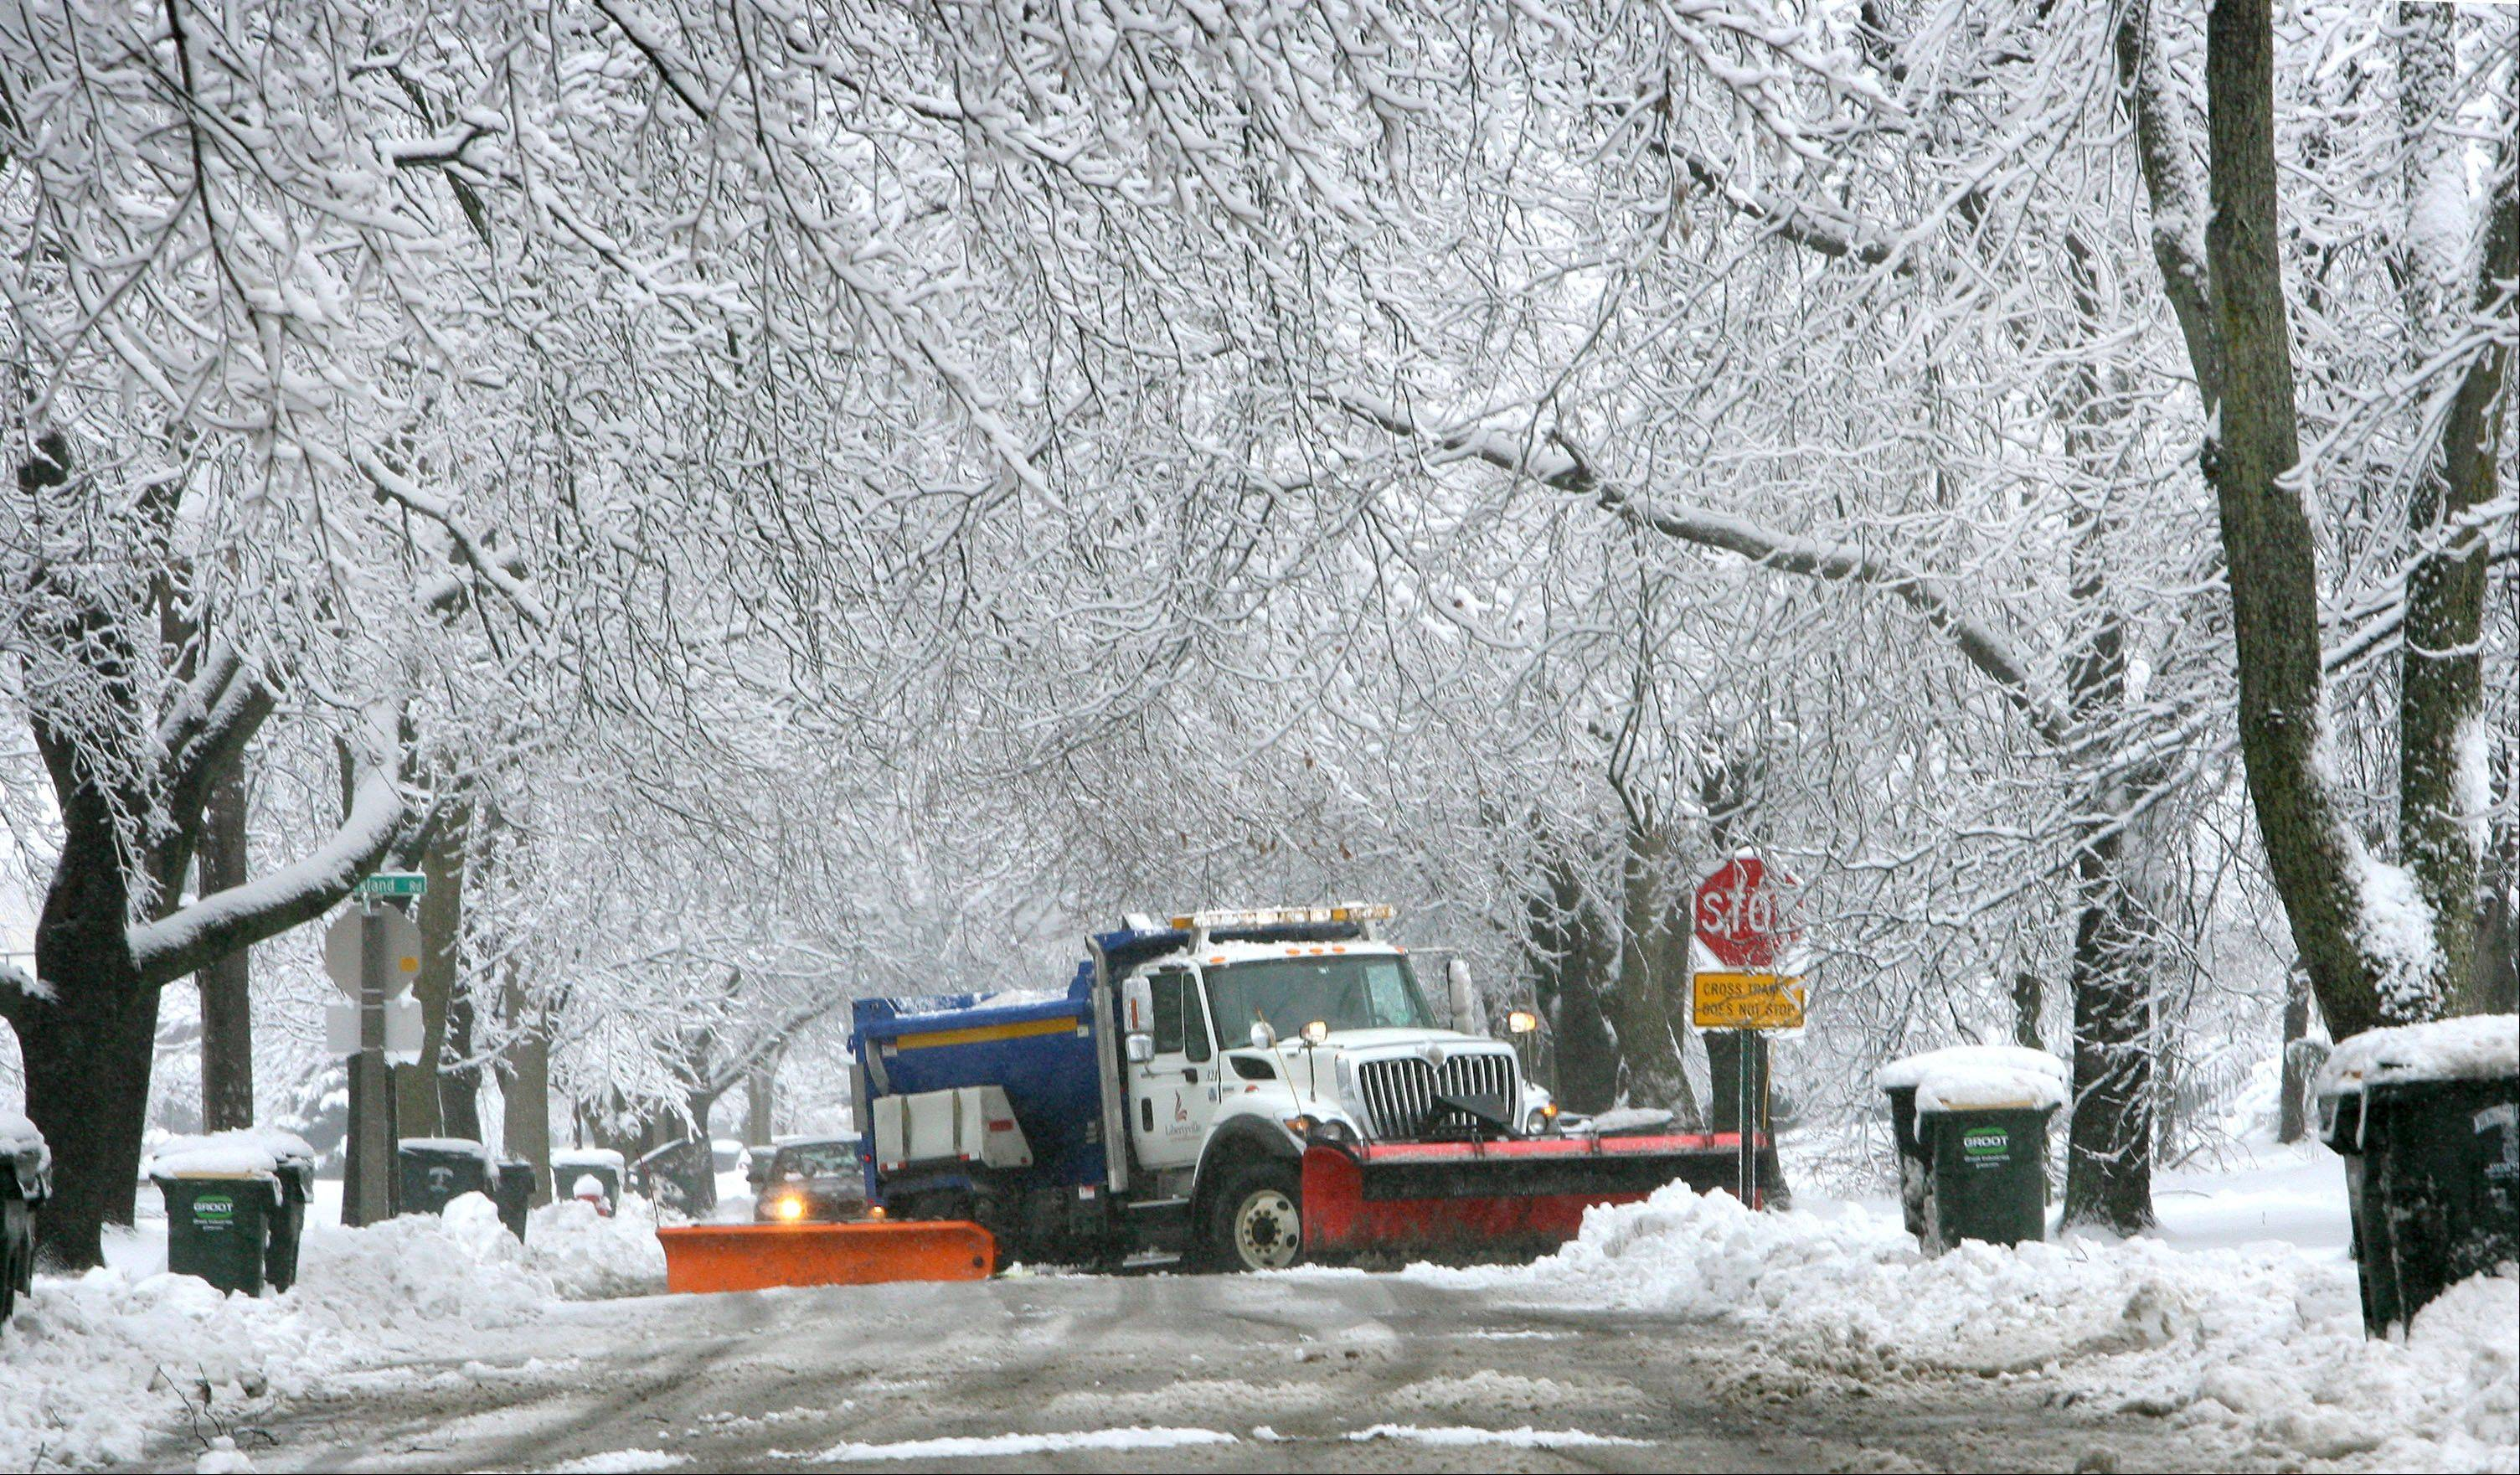 A snowplow heads down Carter Street in Libertyville Friday morning after a winter storm dumped about 6 inches of snow on the area Thursday night.